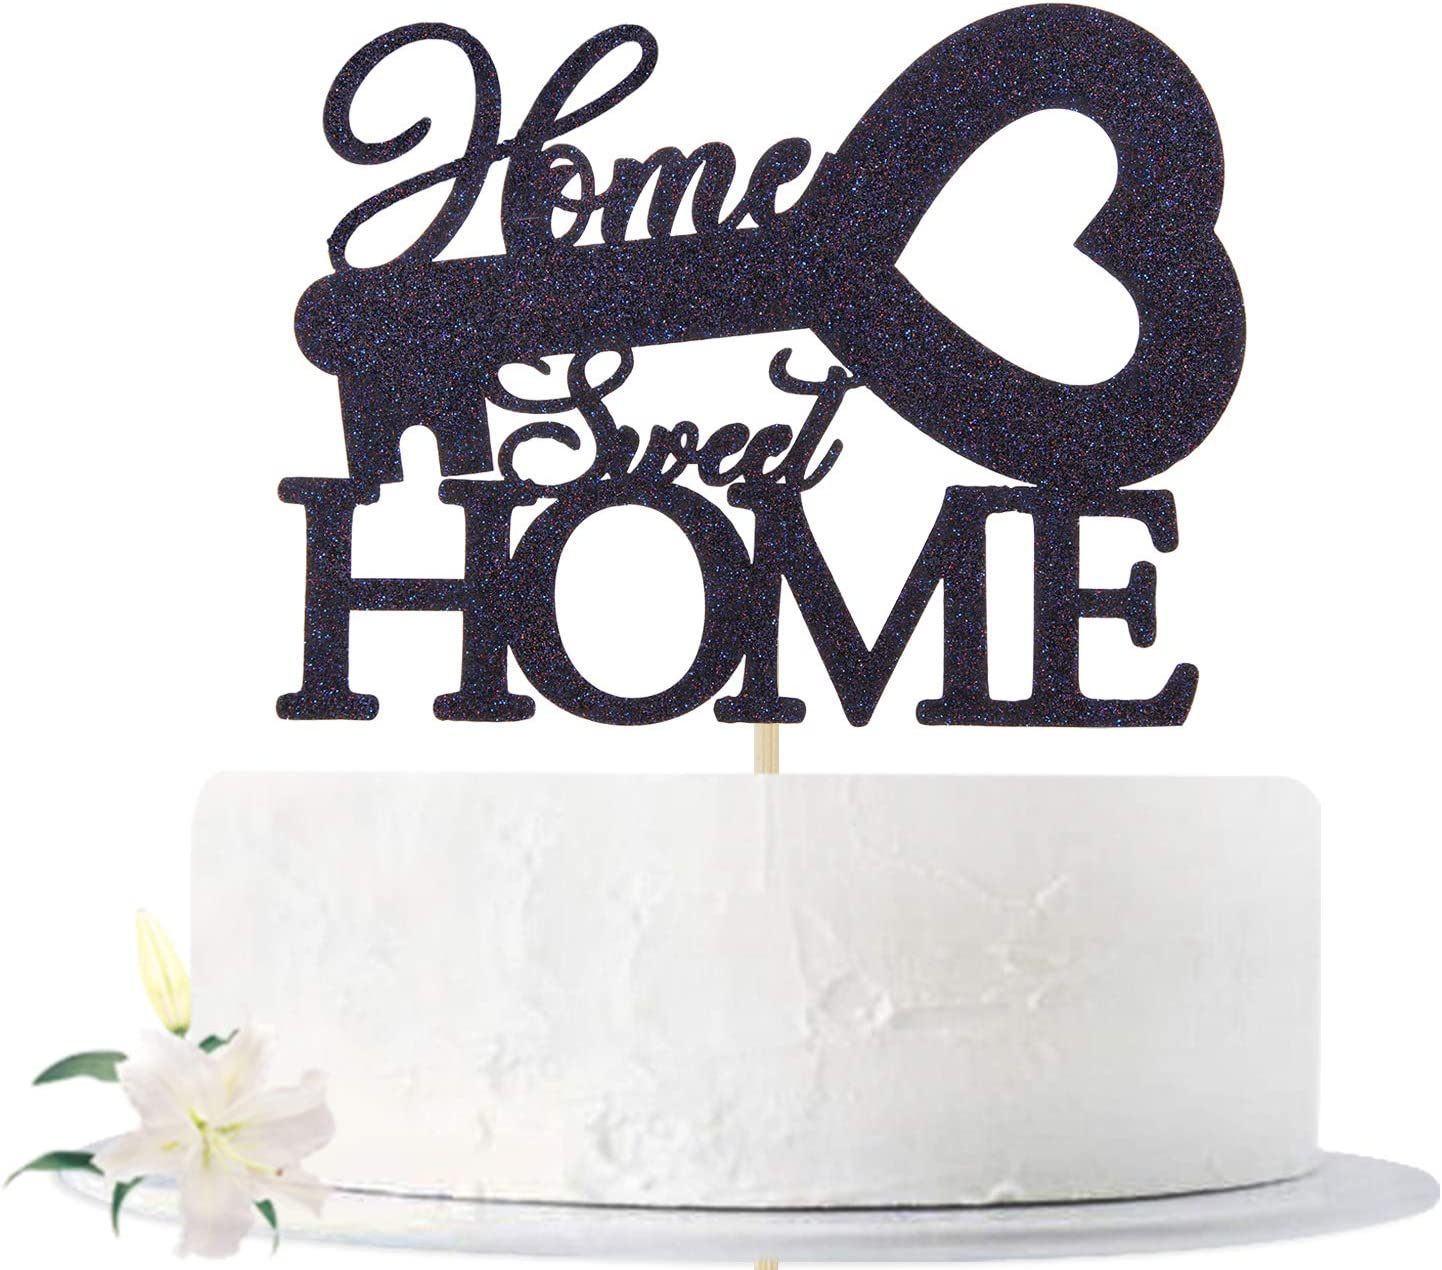 Black Glitter Home Sweet Home Cake Topper, New Home - Family Theme Party Sign - Welcome Home, House Warming New Home Party Decoration Supplies